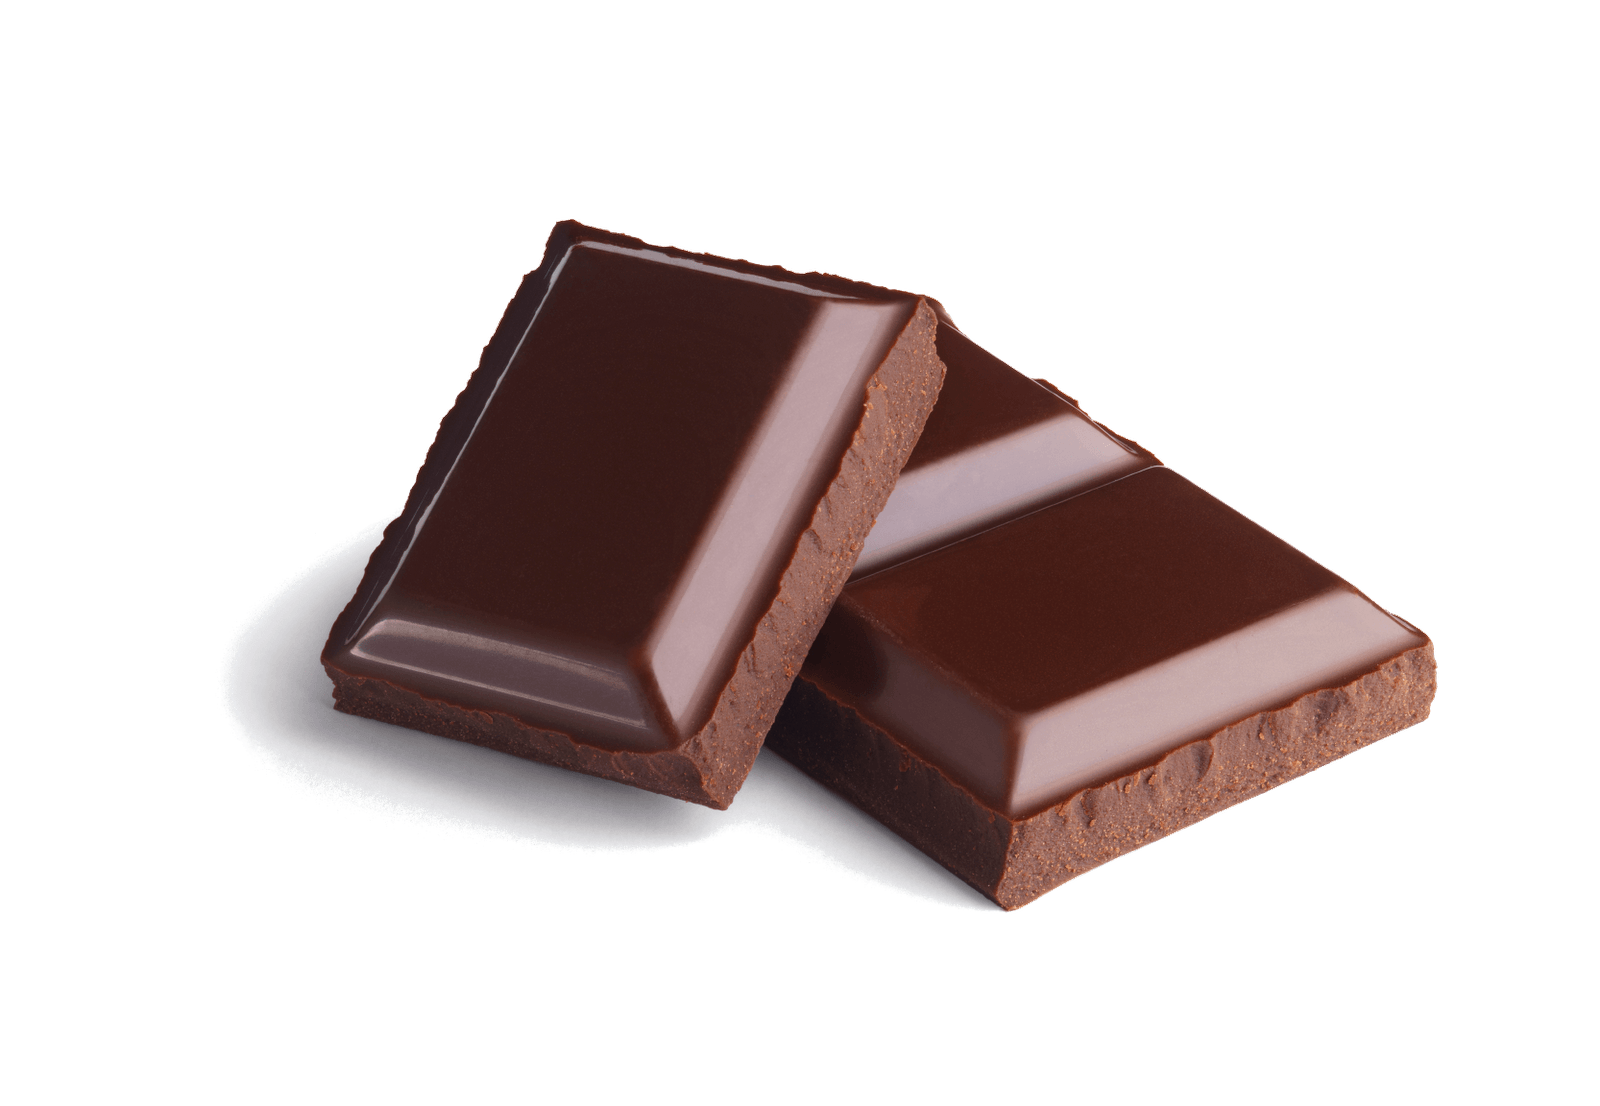 Chocolate Png Image PNG Image